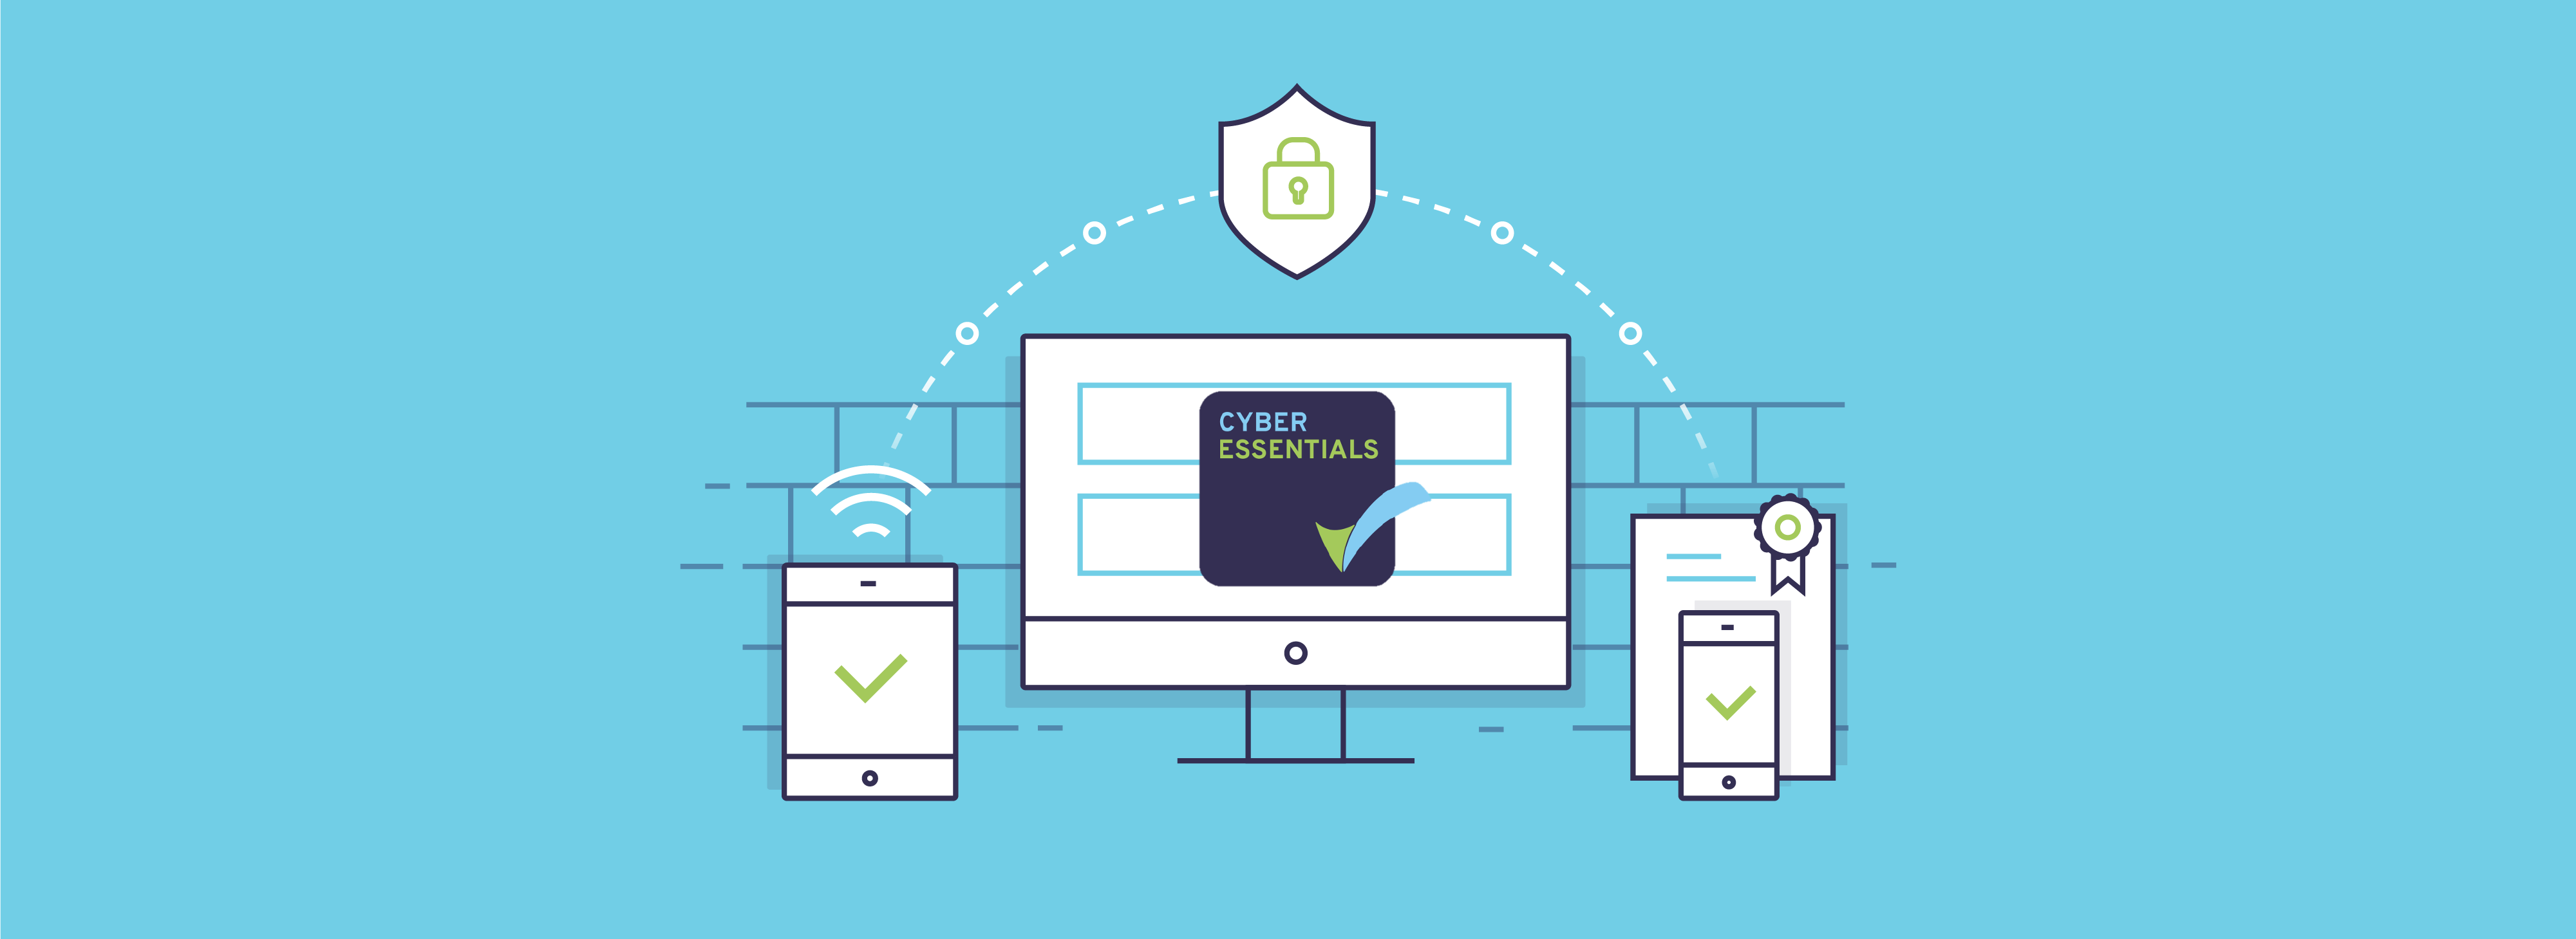 Header of Cyber Essentials Certification blog